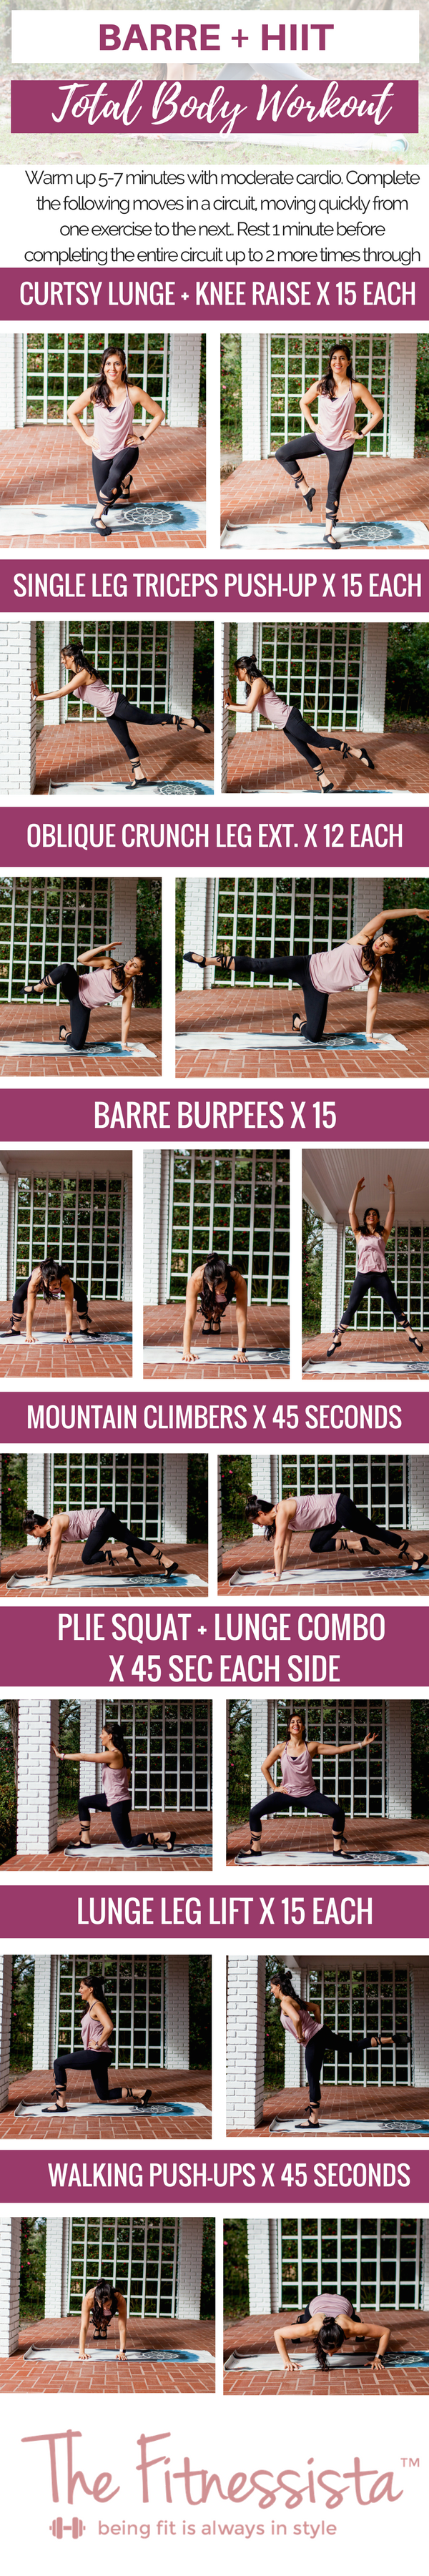 Total body barre circuit workout you can do anywhere. Check out the details: fitnessista.com | #barre #barreworkout #totalbodybarre #totalbodyworkout #hiitworkout #barrehiitworkout